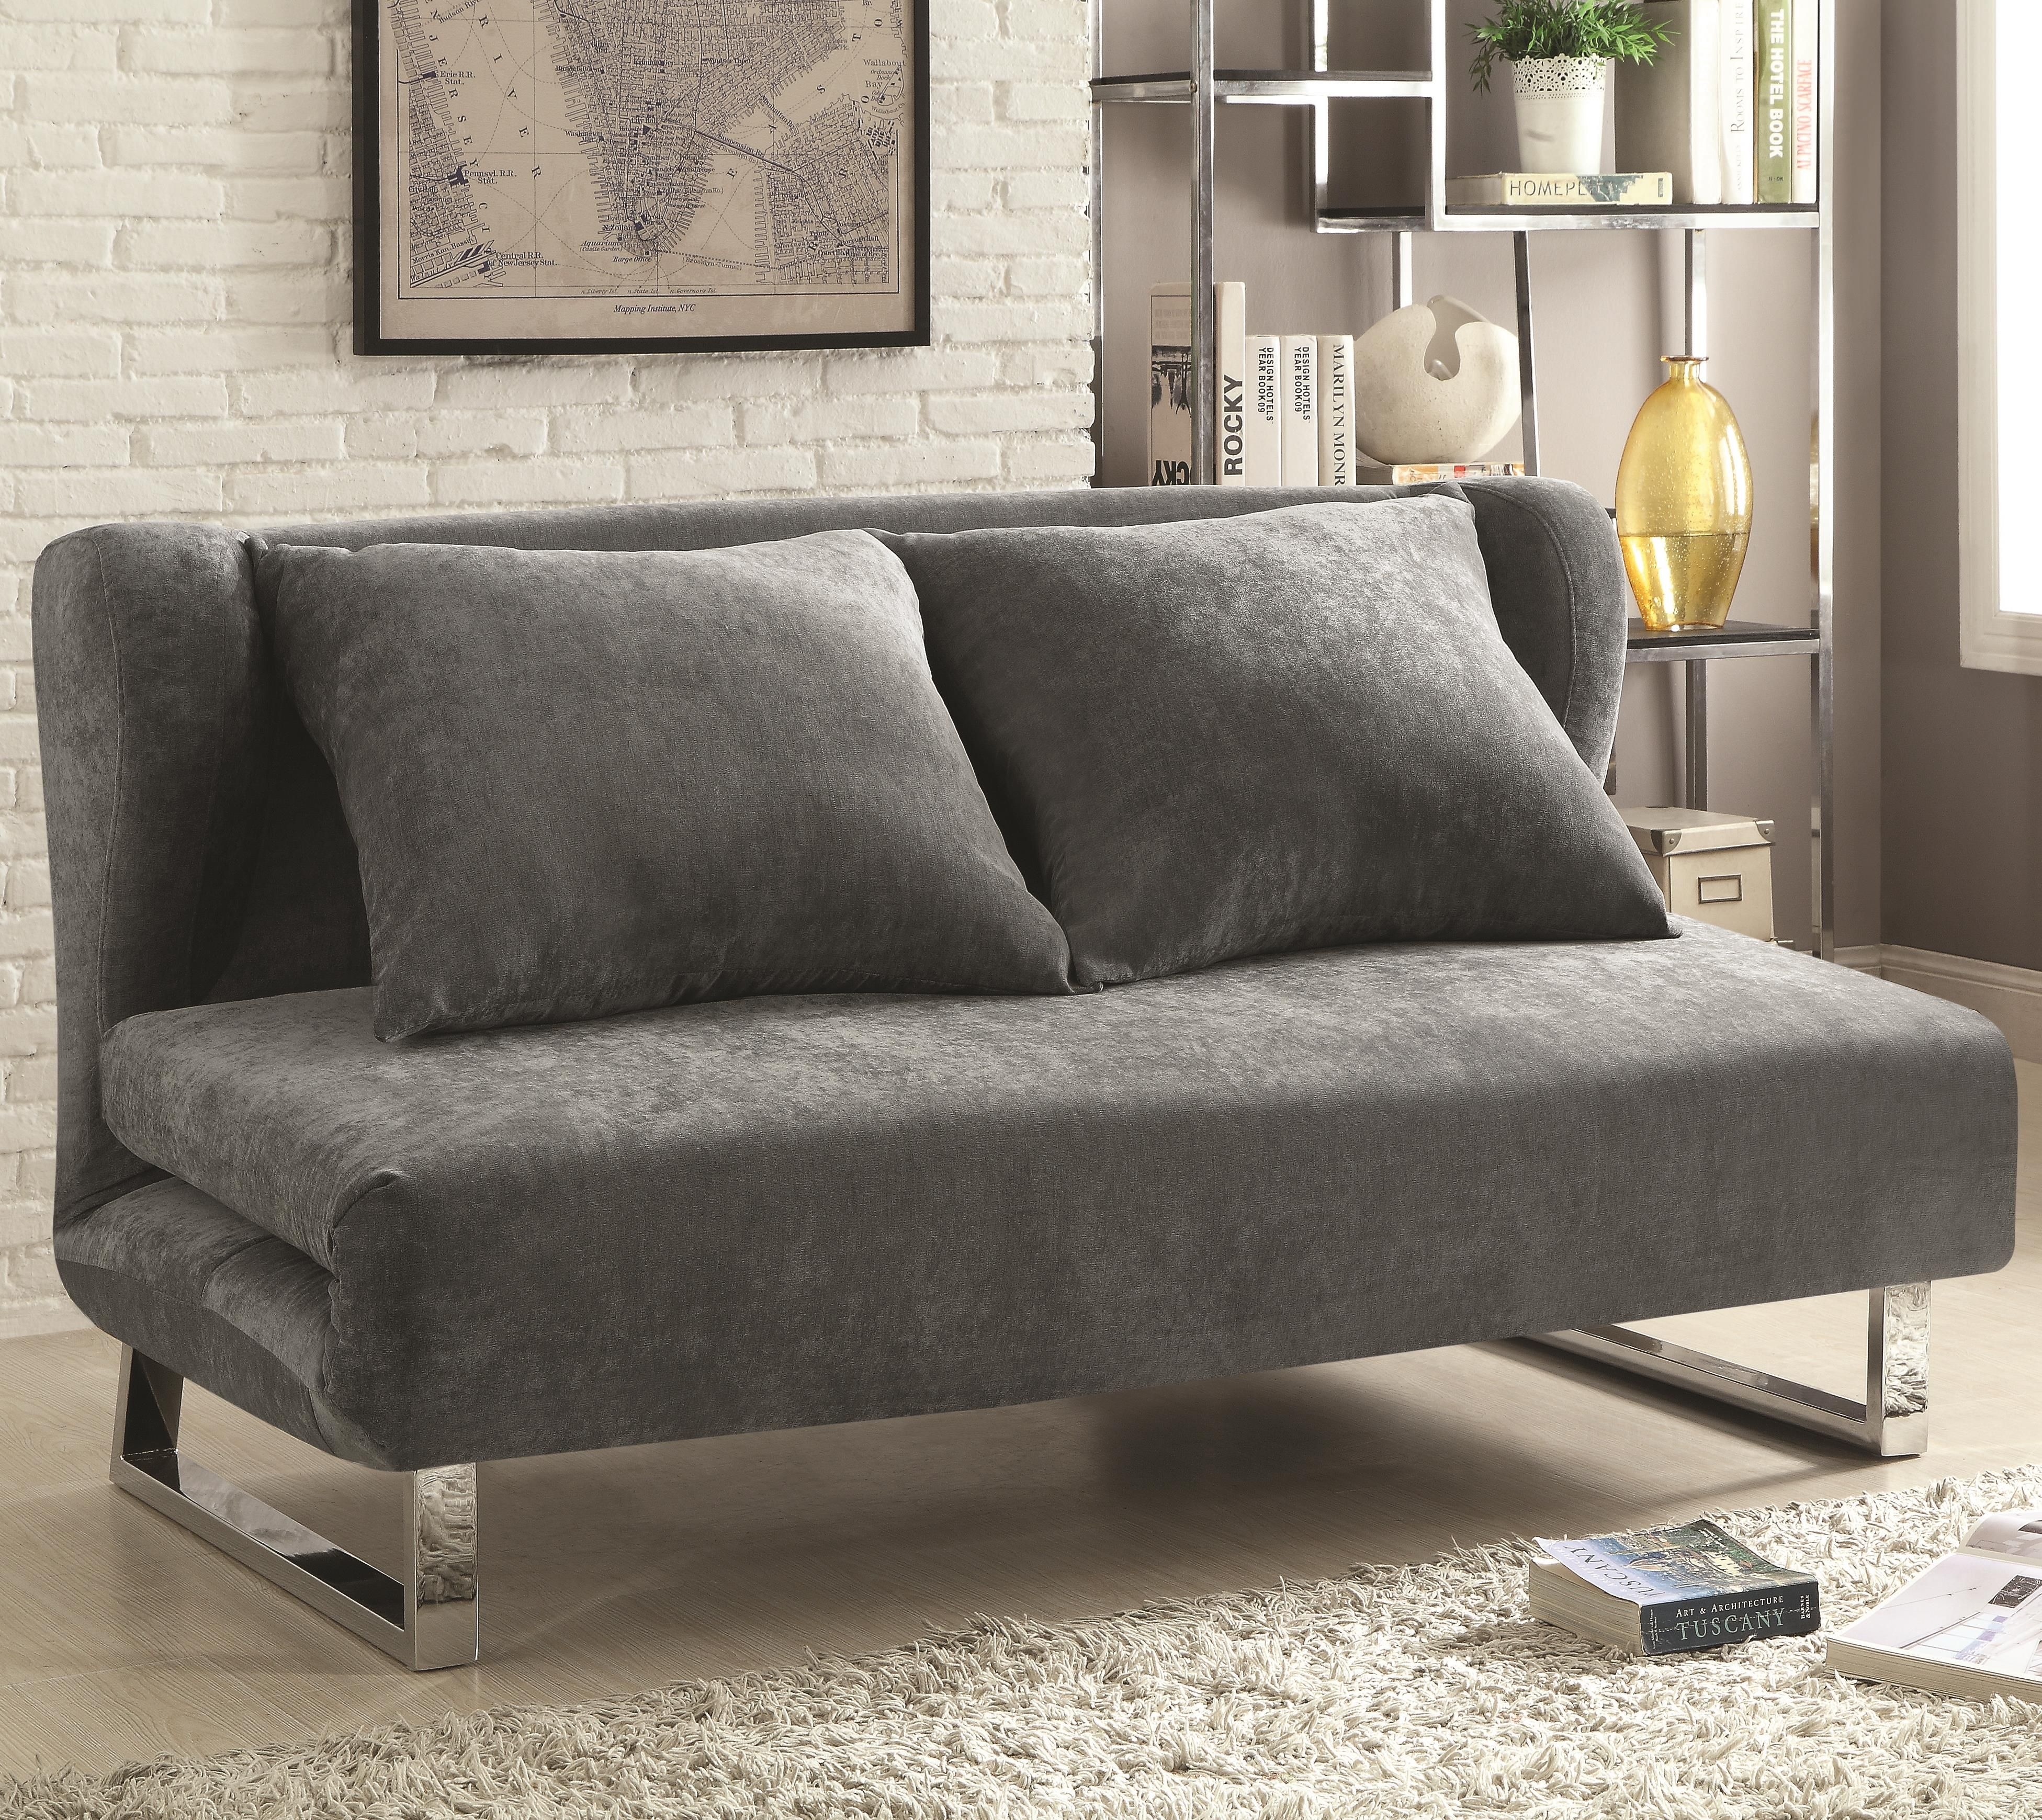 Sofa Beds And Futons Transitional Velvet Sofa Bed By Coaster At Del Sol  Furniture